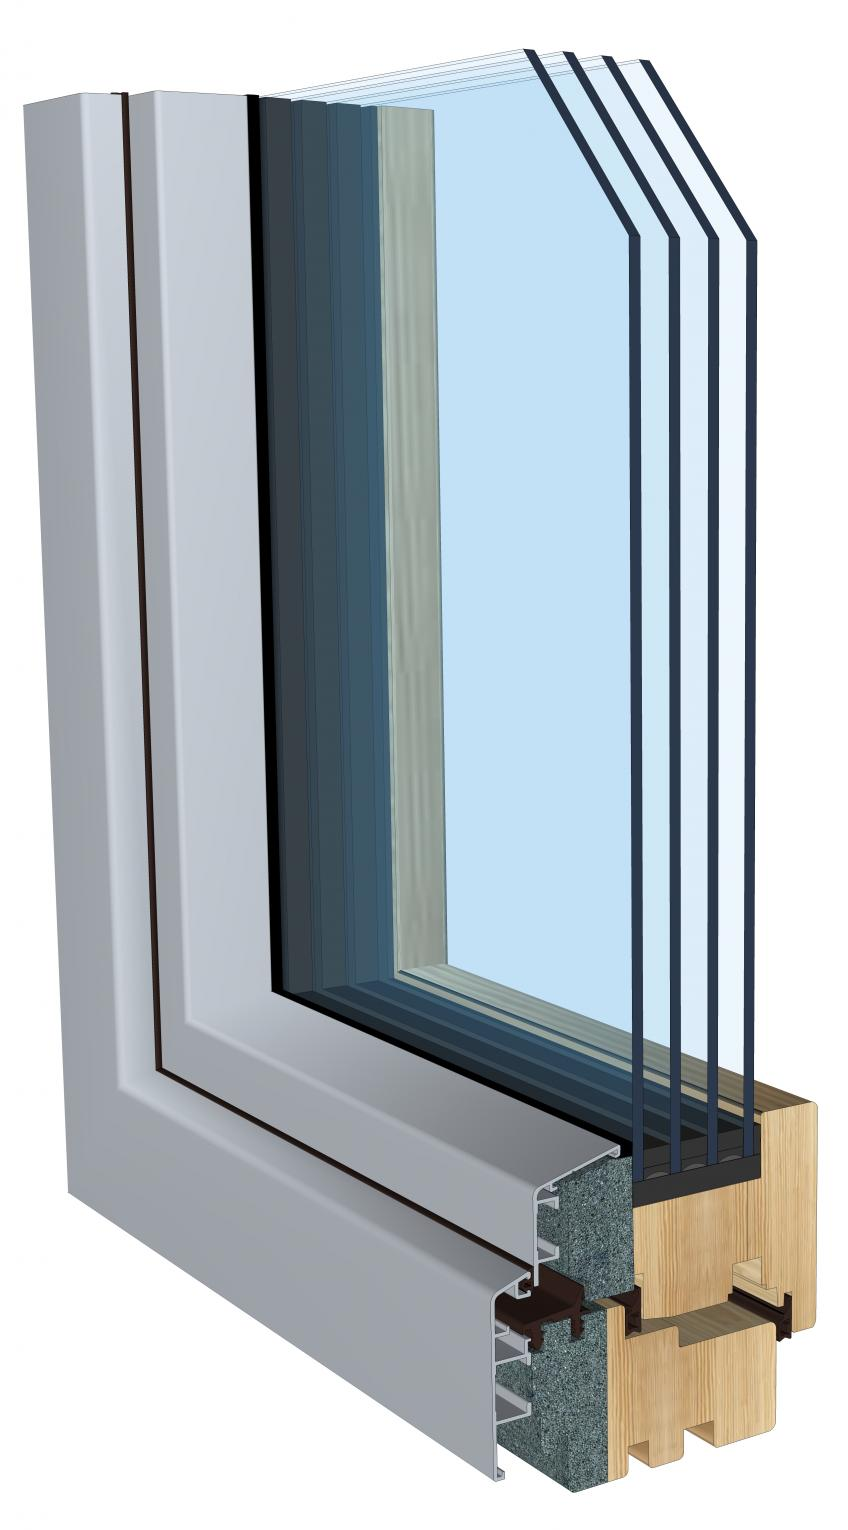 Arctic is a new premium performance window that can be used across a broad range of temperatures, including extremely cold climates. The Passive House Institute-certified window features a wood/aluminum frame, polyurethane-foam insulation, thermal glazing, and a superspace triple seal with butyl as a secondary seal. It offers thick insulation, boasting an R-value of 15 and quadruple glazing.